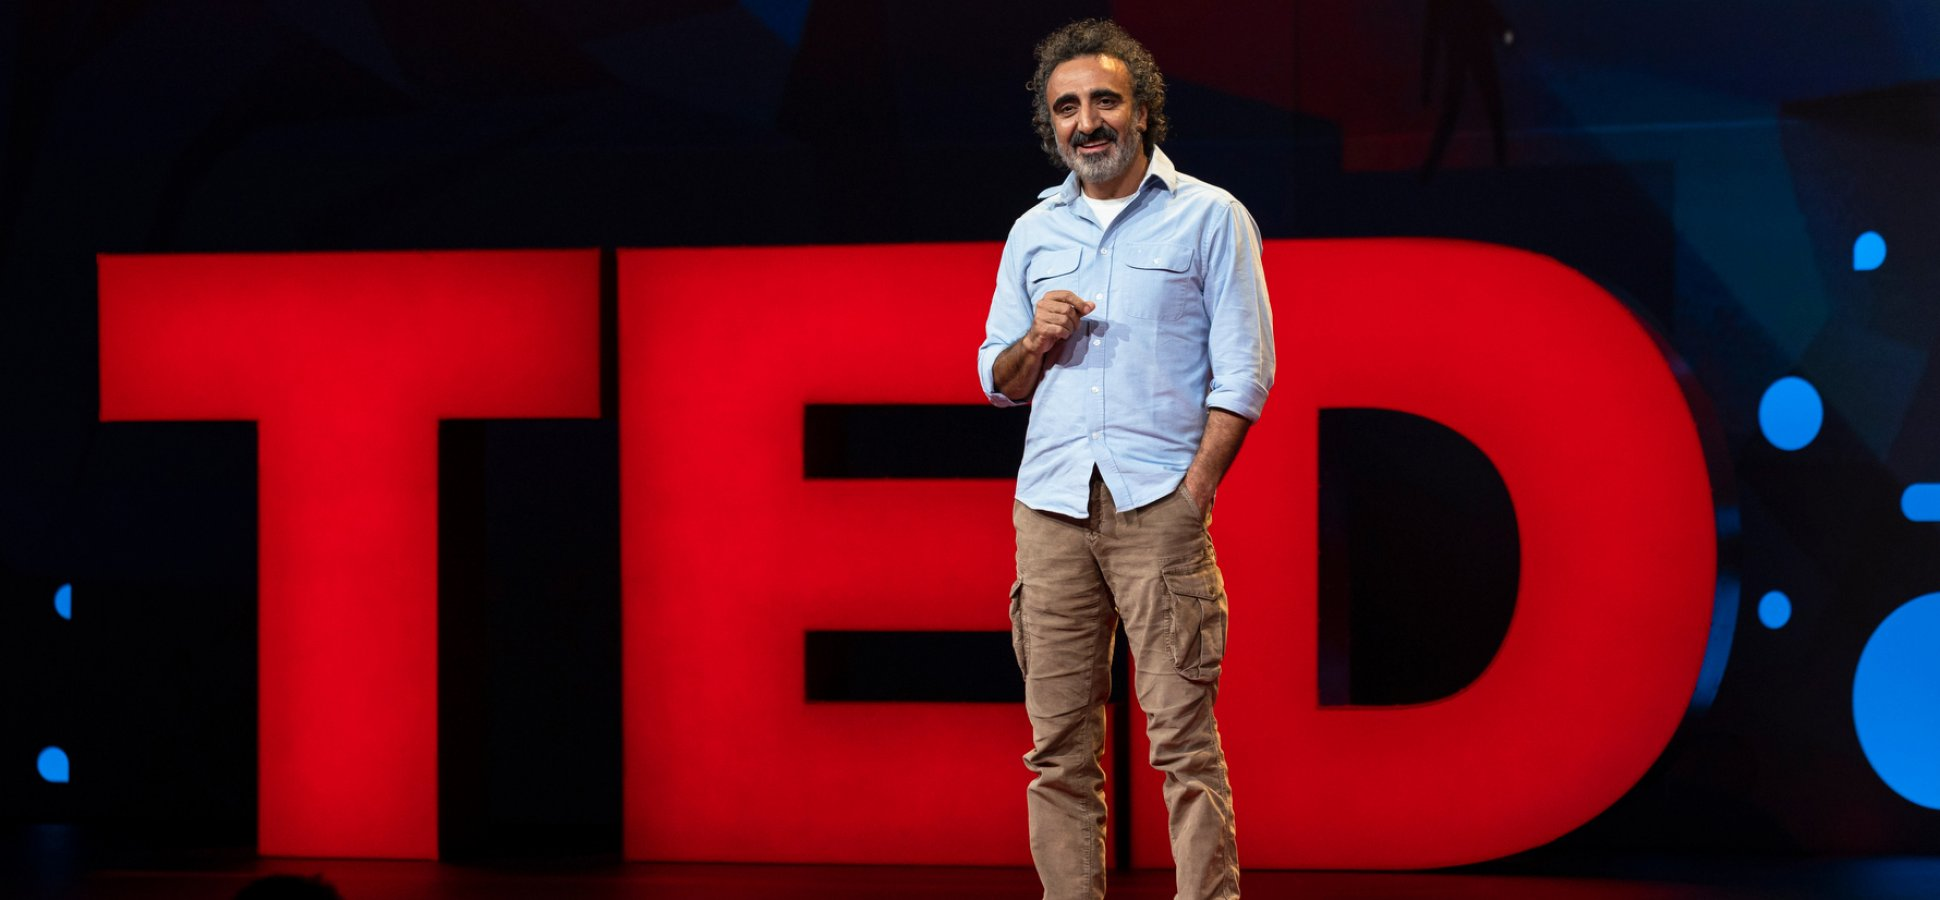 In a TED Talk, Chobani Founder Hamdi Ulukaya Gives 4 Secrets to Success